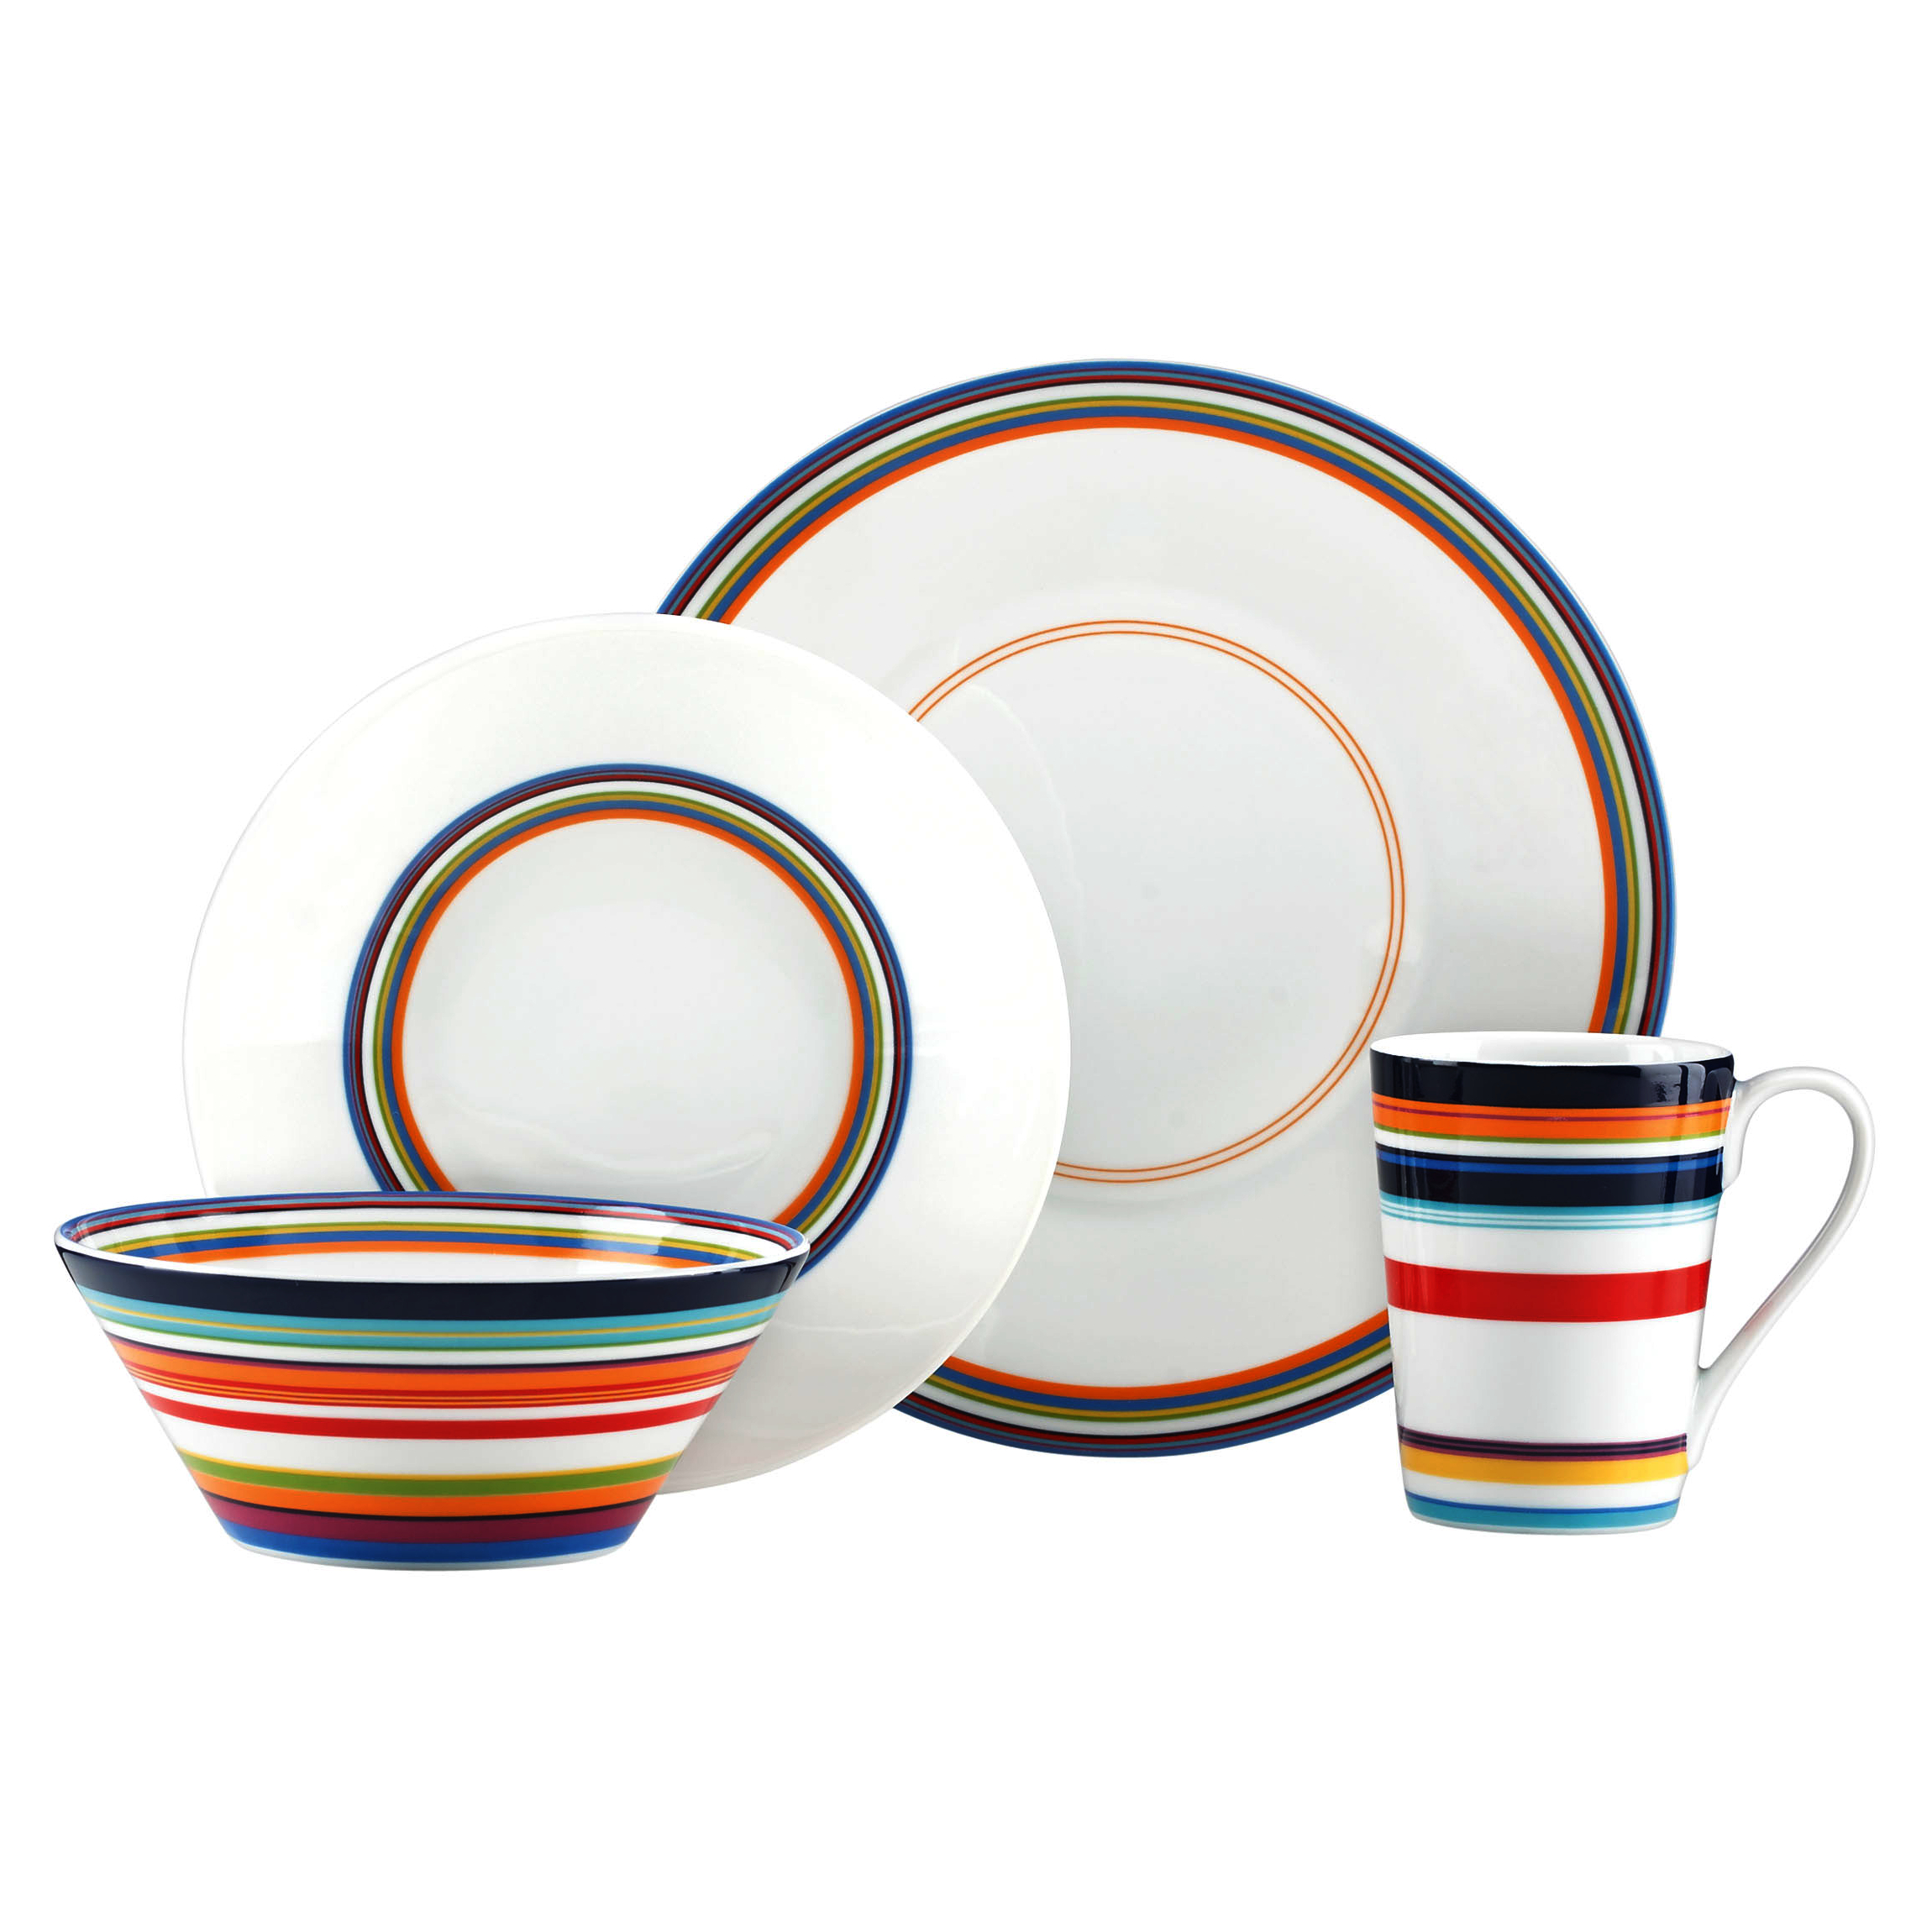 DKNY Urban Essentials by Lenox White 4 Piece Dinnerware Place Setting by Dkny